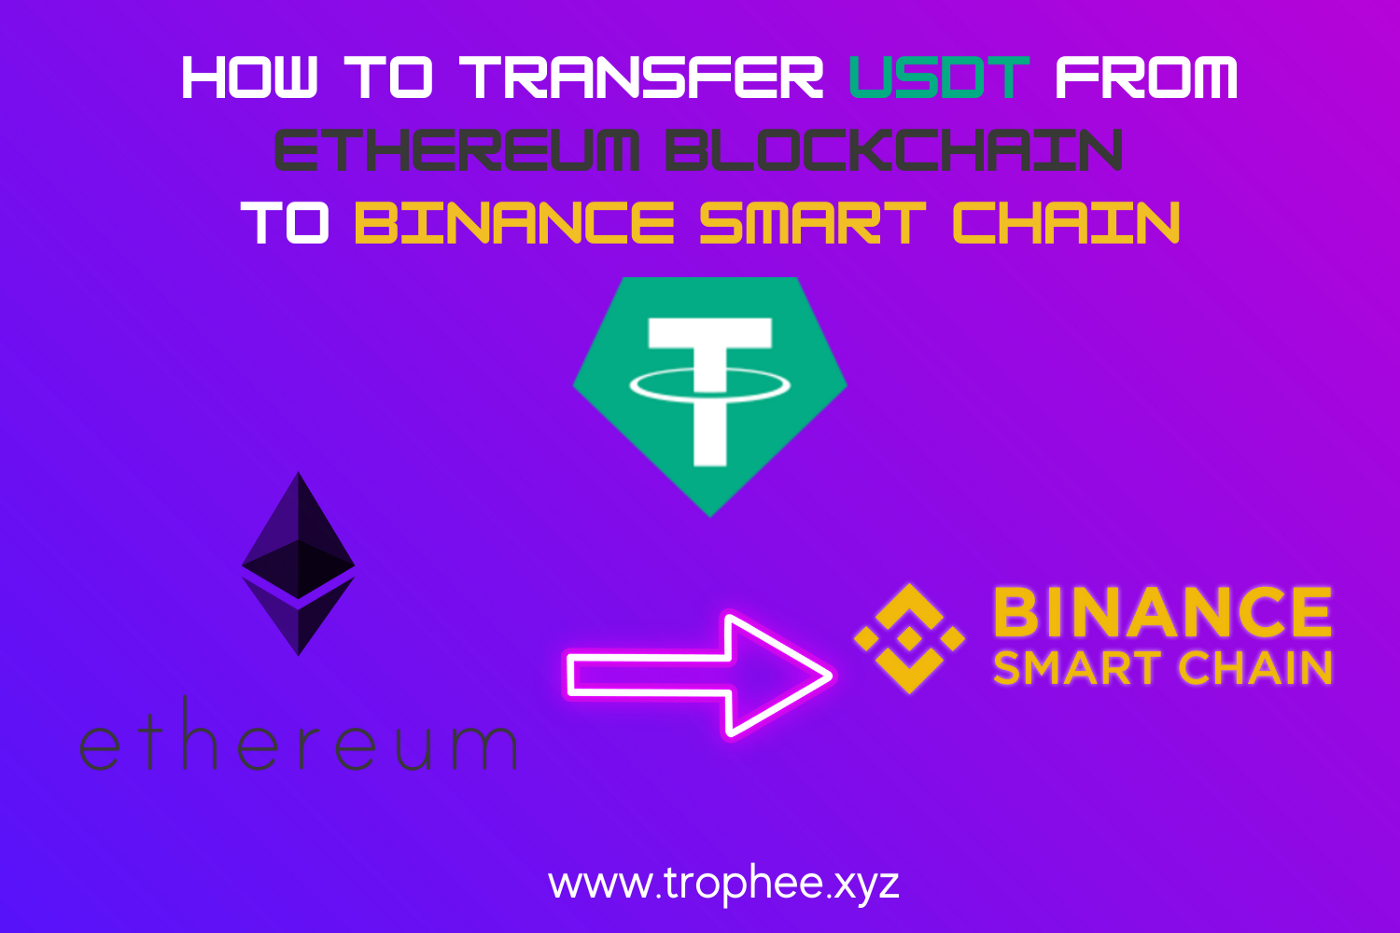 How to transfer USDT from Ethereum Blockchain to Binance Smart Chain